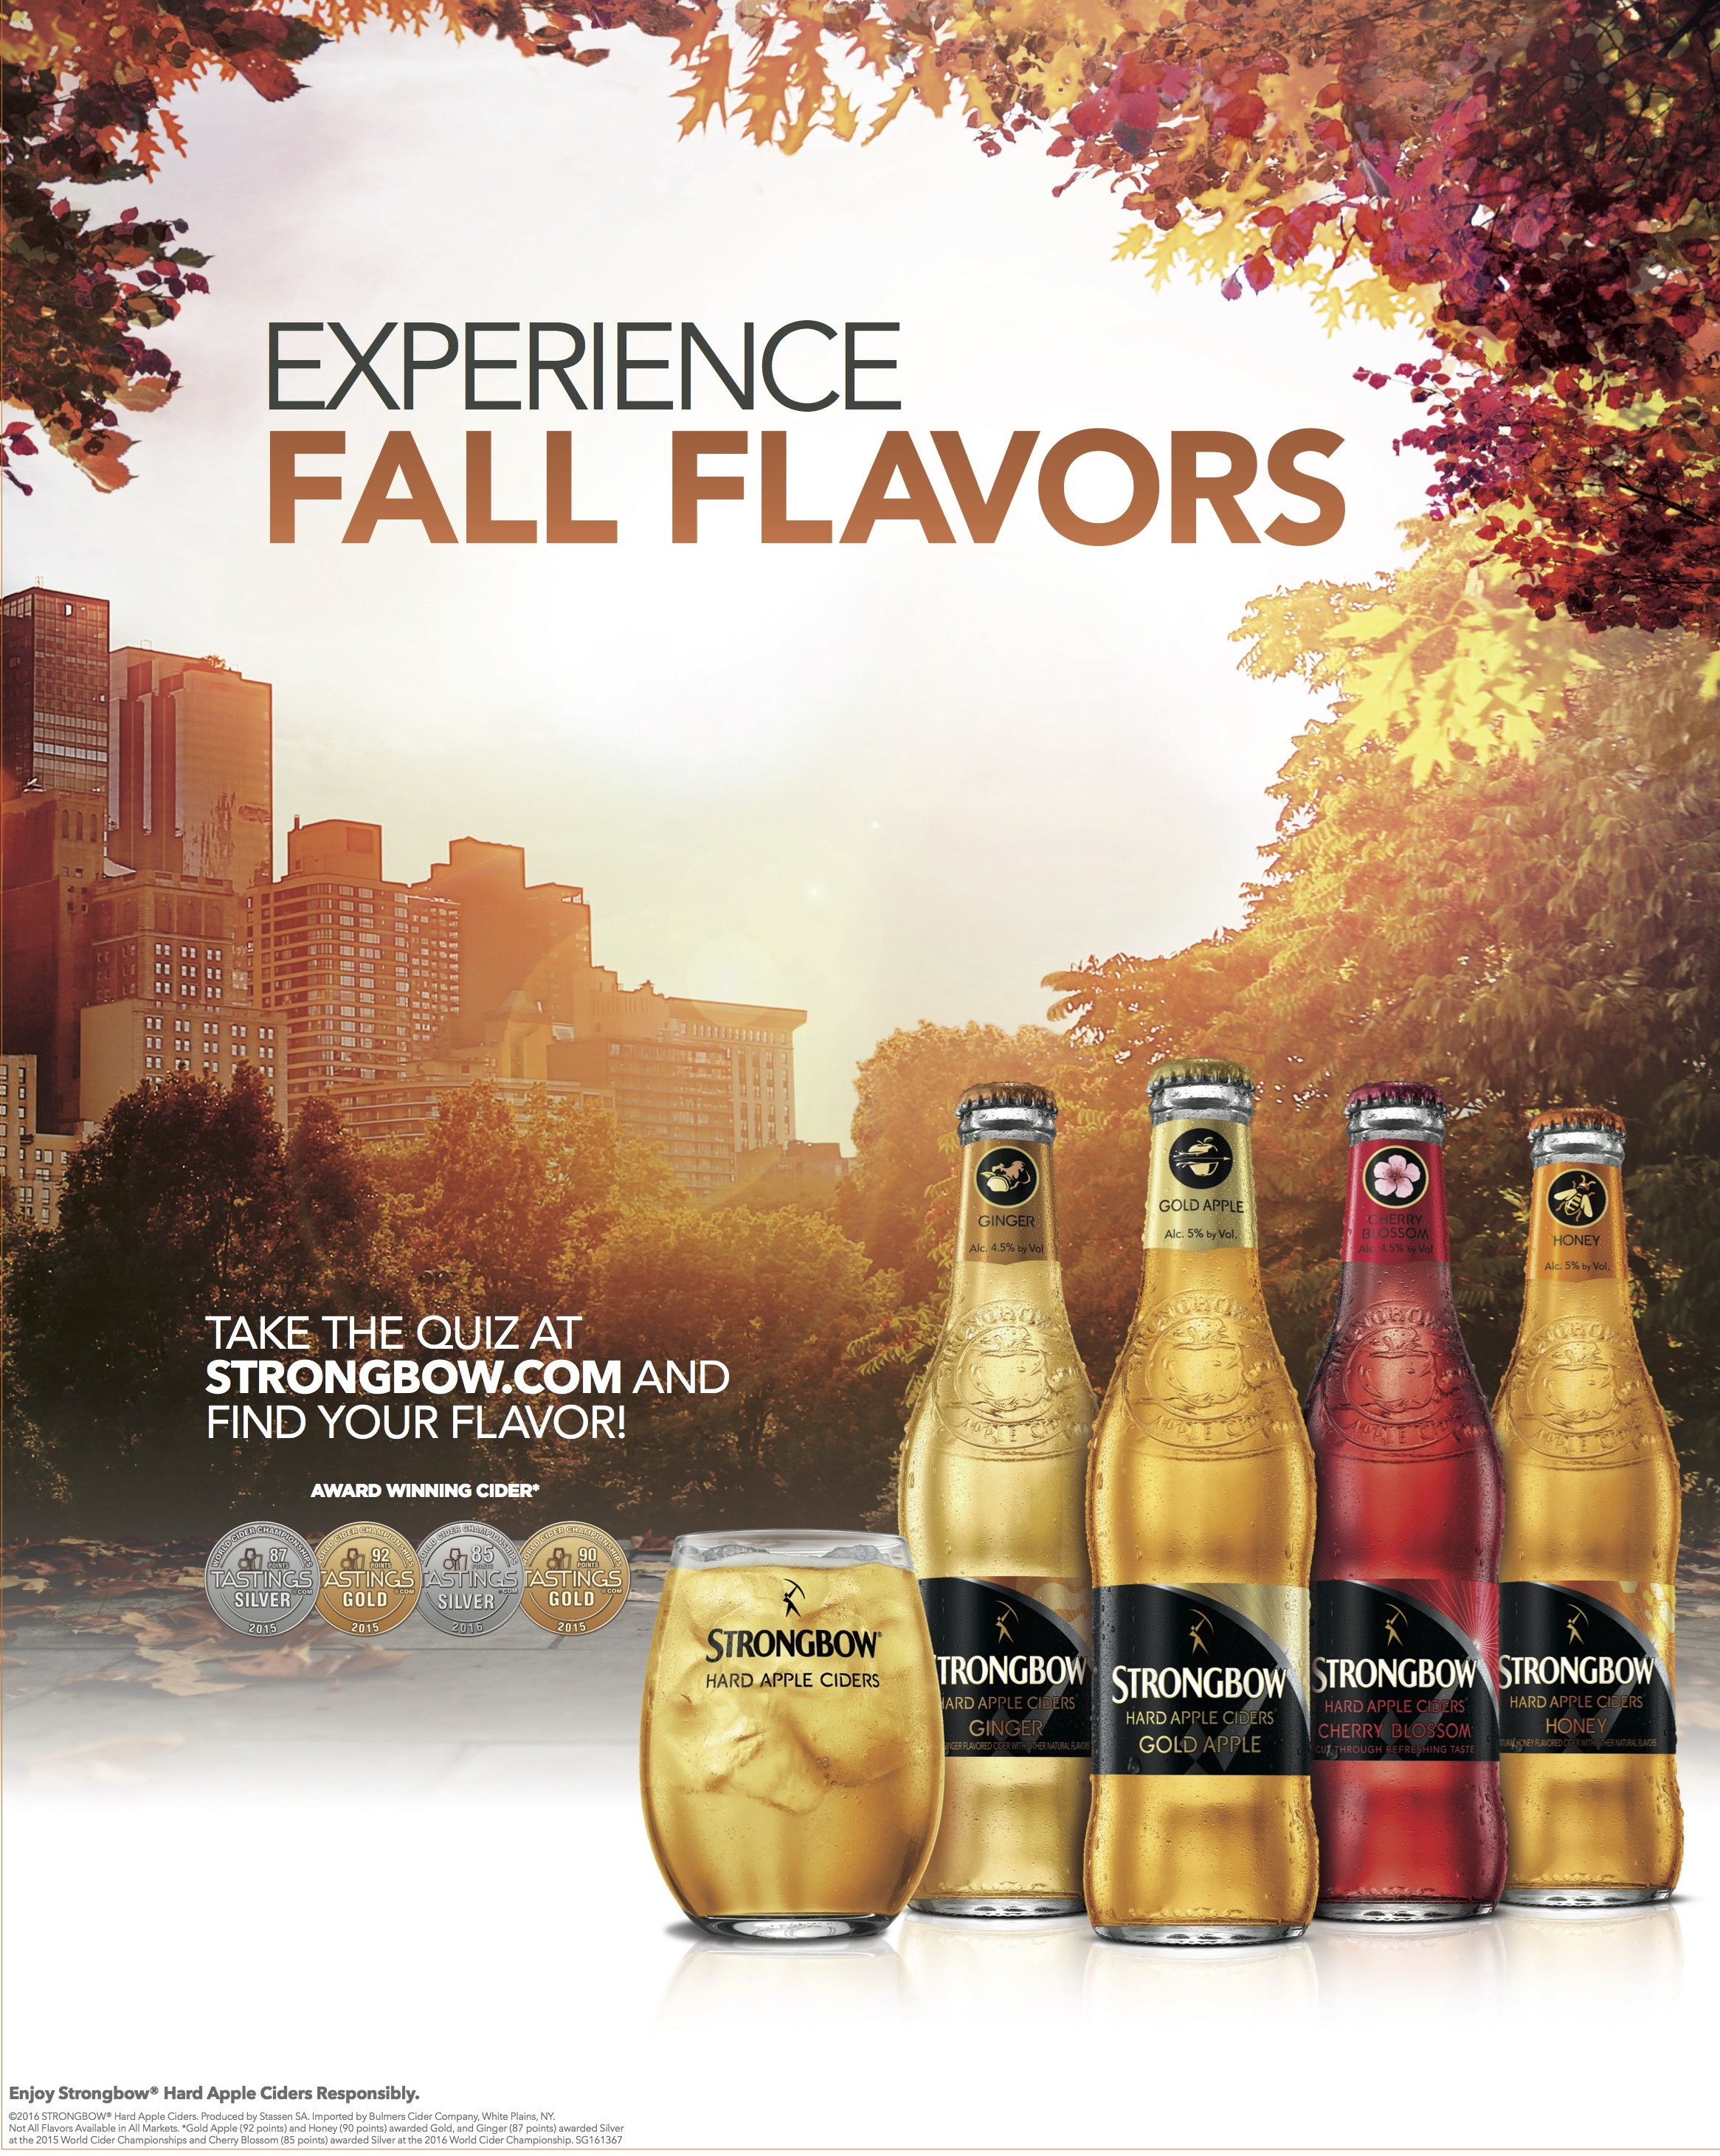 Strongbow Hard Apple Cider Launches Fall Consumer Campaign